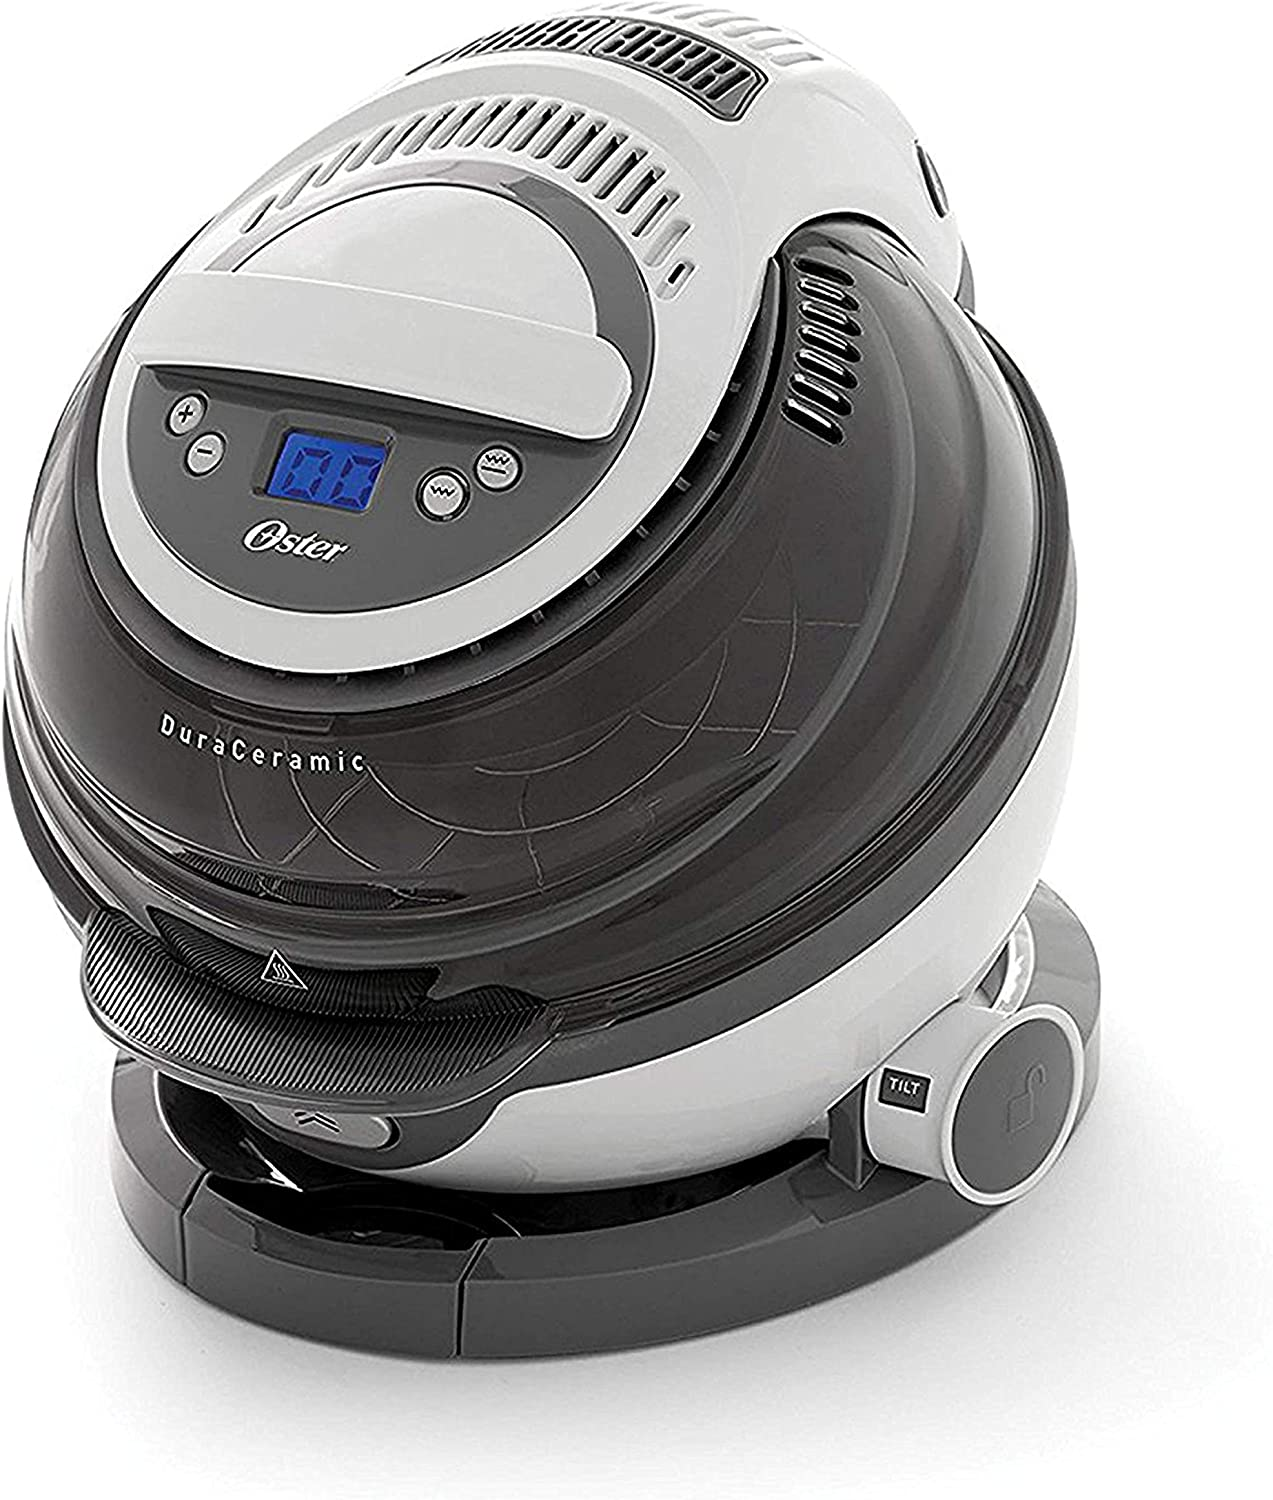 Oster Dura Ceramic Air Fryer All SALENEW very popular! stores are sold 3L Large Black CKSTAF-TECO -